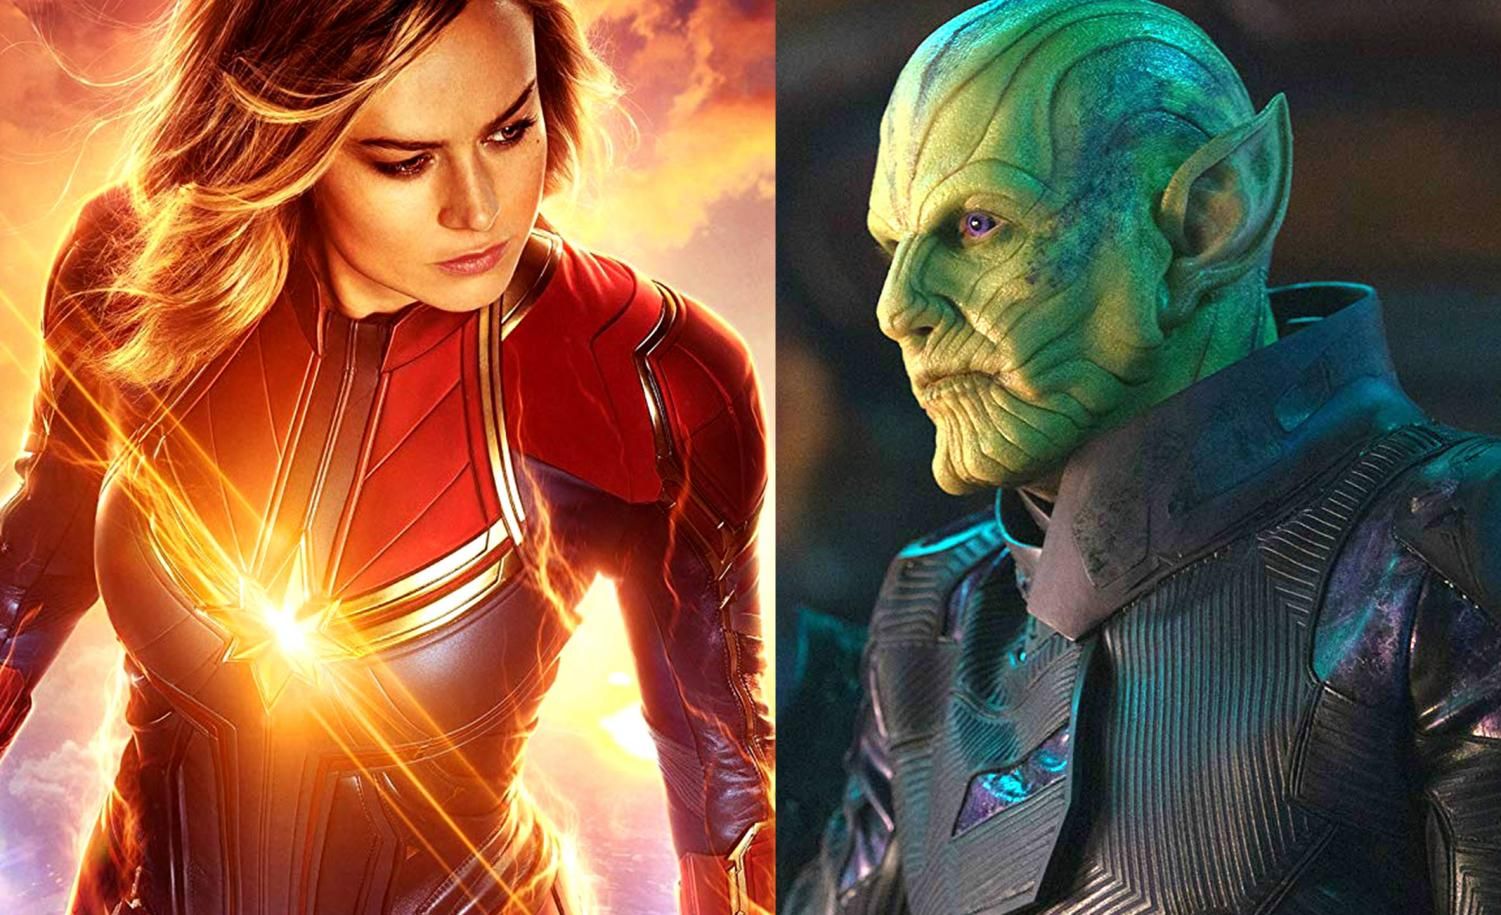 Captain Marvel is the next blockbuster Marvel title, scoring huge money at the box office and battling with the Skrulls (right).